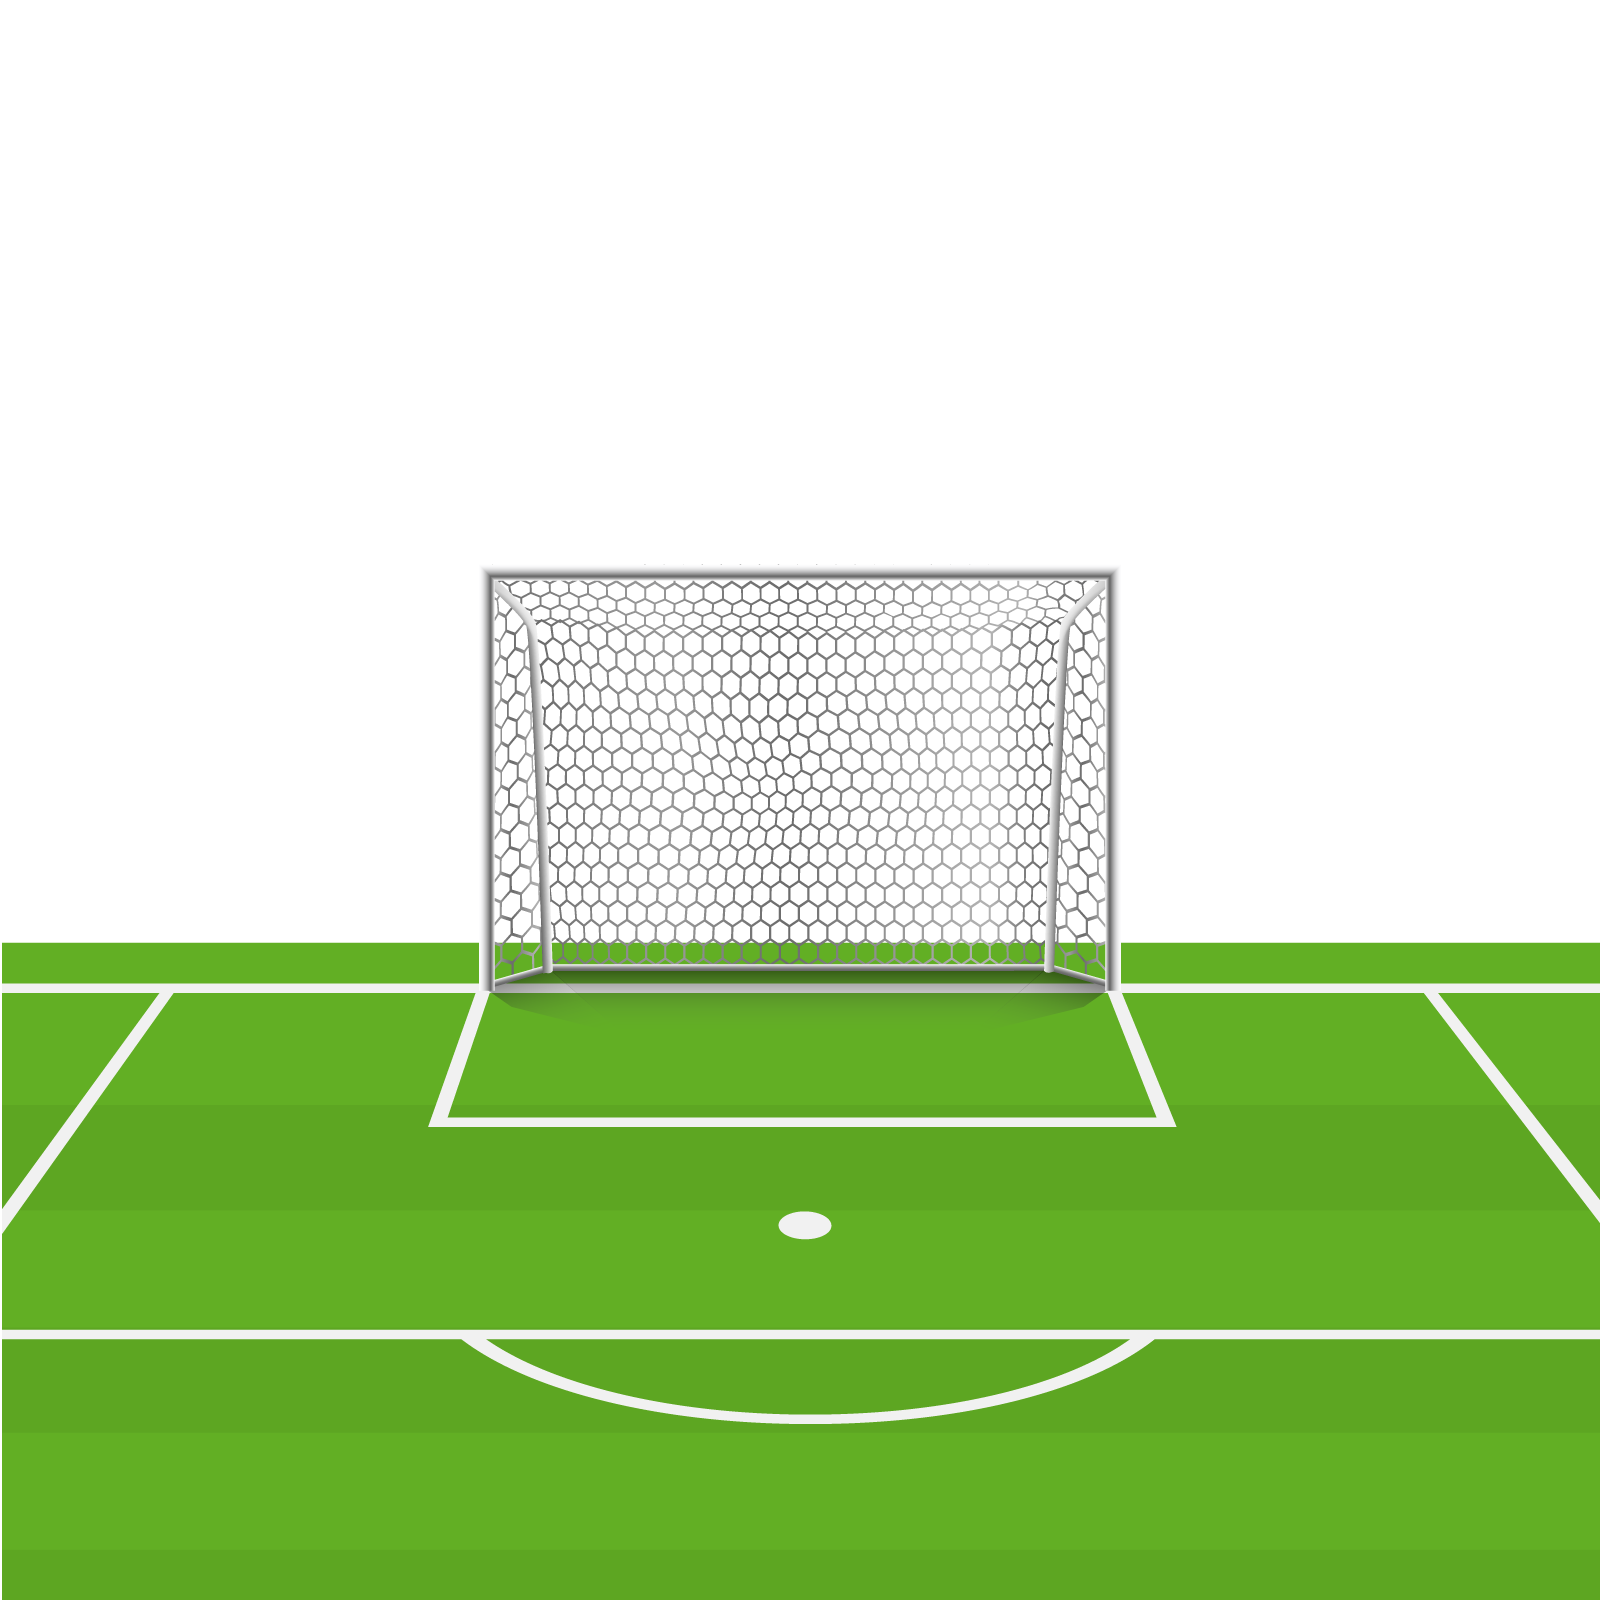 Png images free download. Football goal clipart